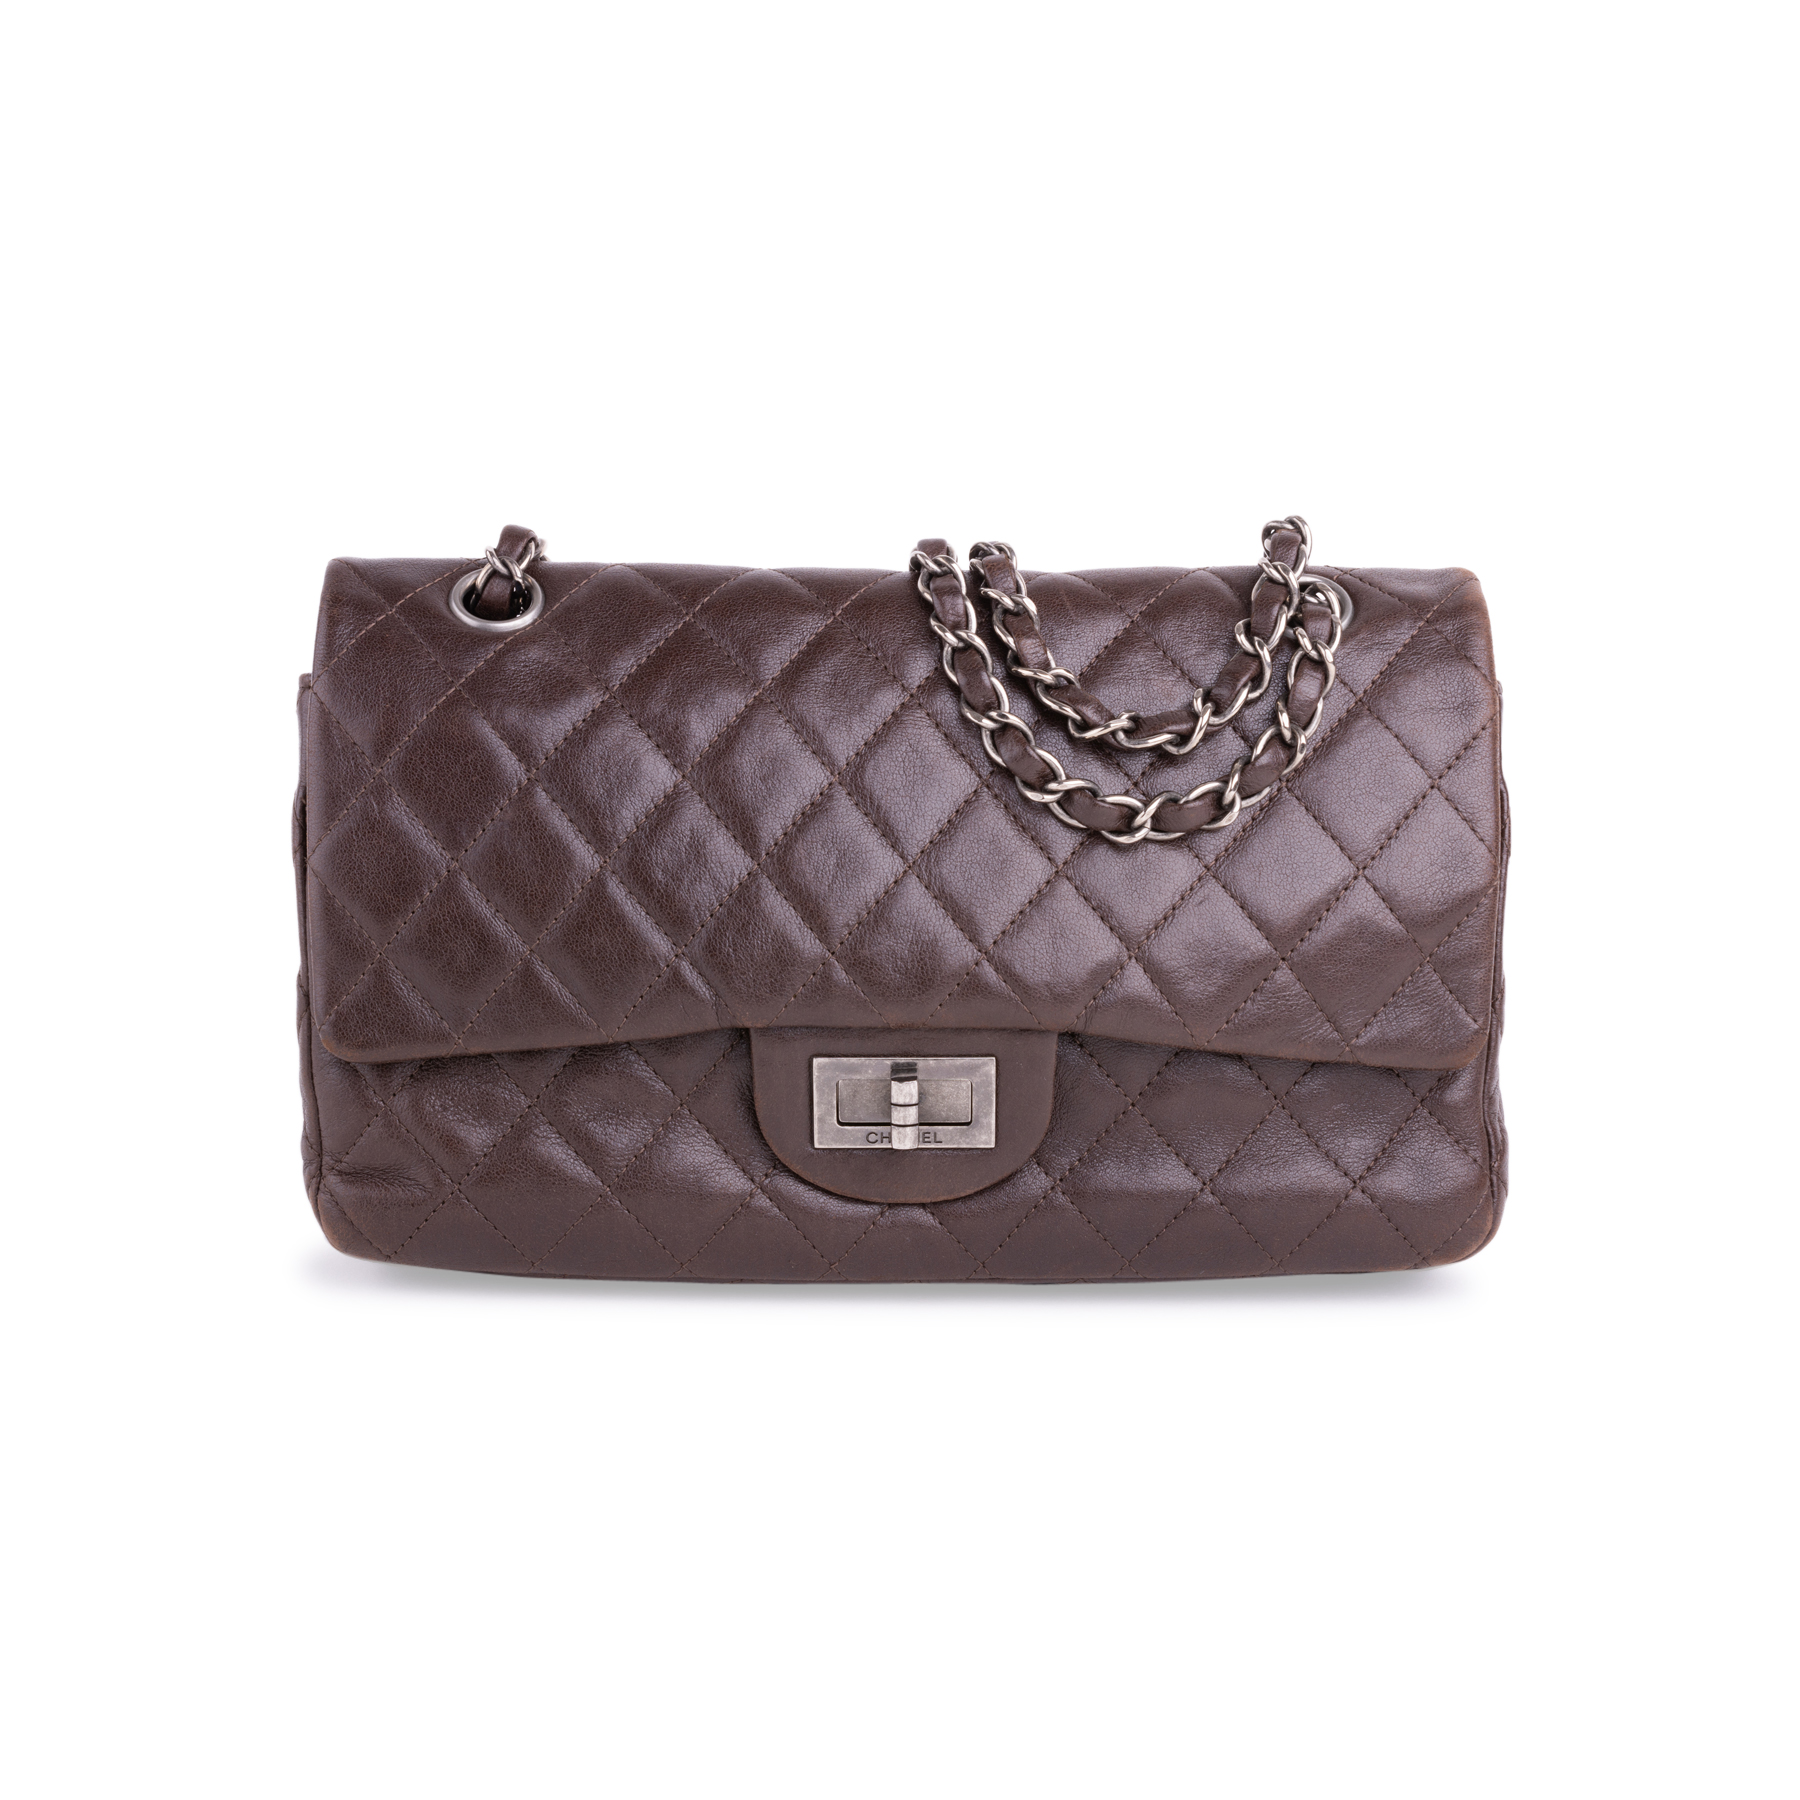 121e12f9b3b2af Authentic Second Hand Chanel Hybrid Reissue Bag (PSS-636-00001) | THE FIFTH  COLLECTION